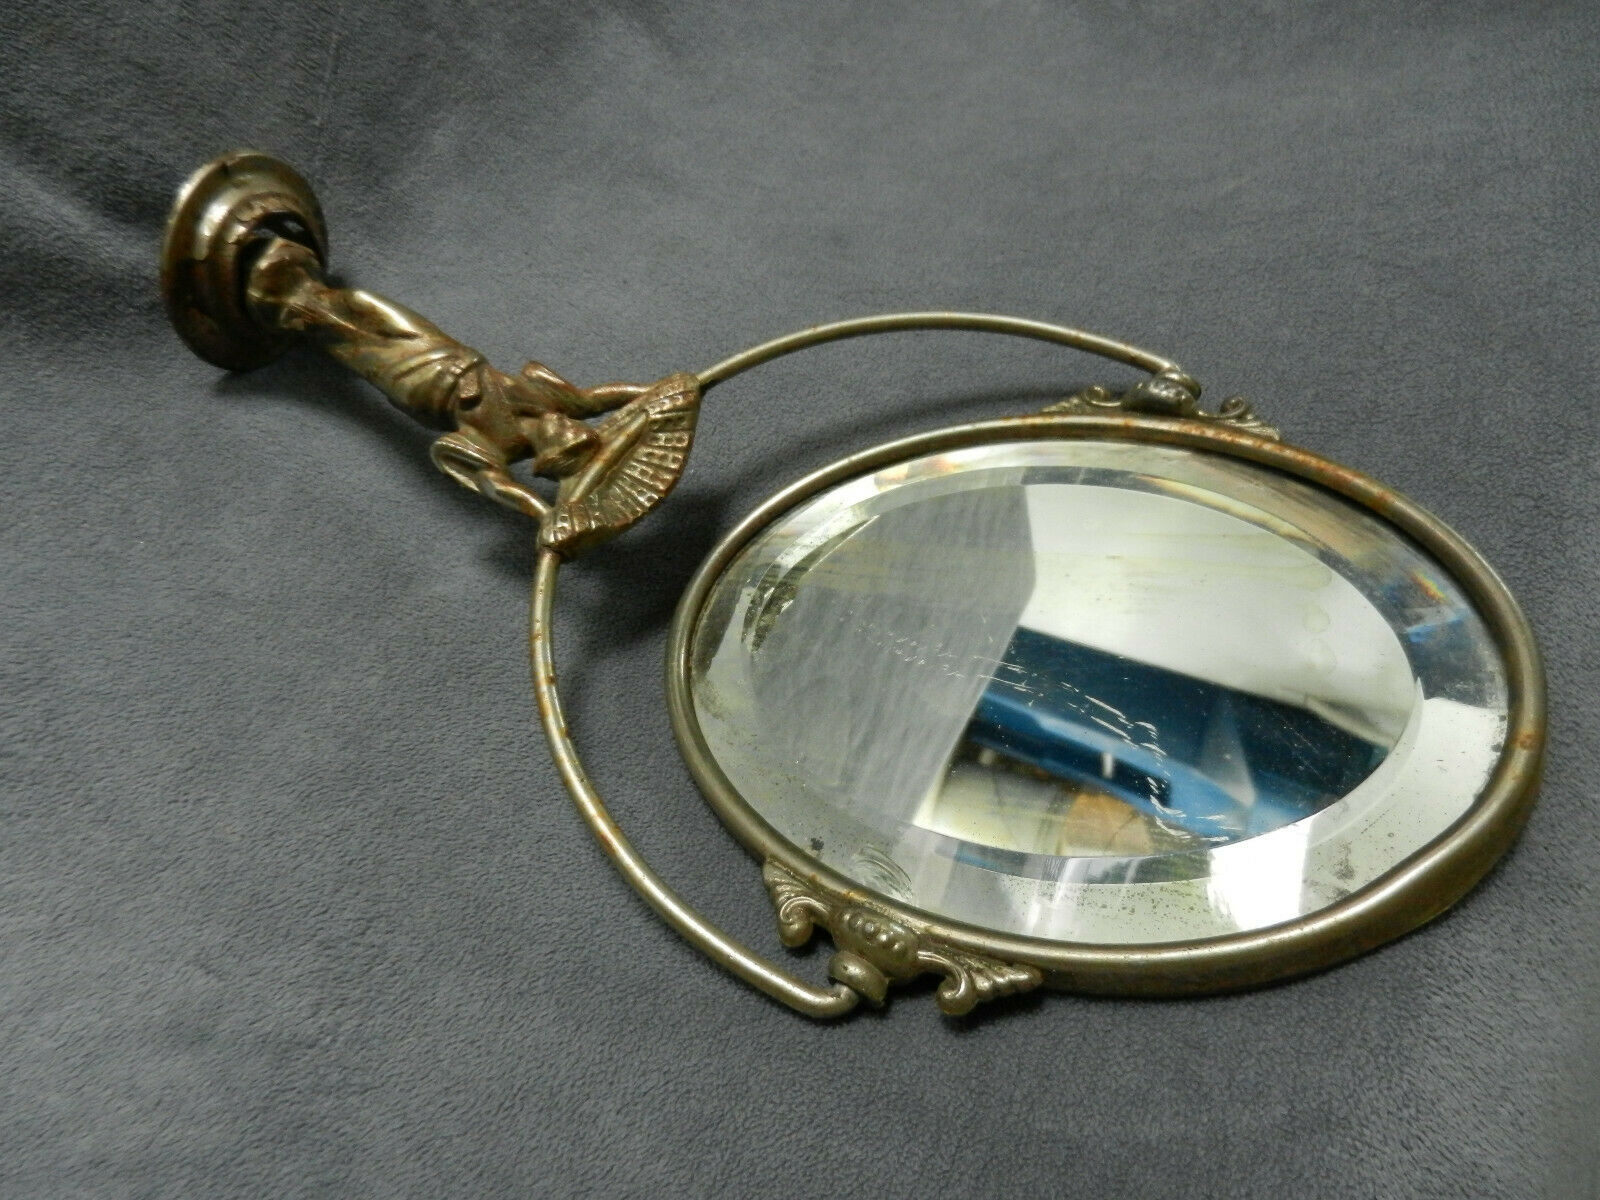 Antique bolt On Personal Size Oval Mirror, Plated Cast Iron Figure Ornaments - $14.99